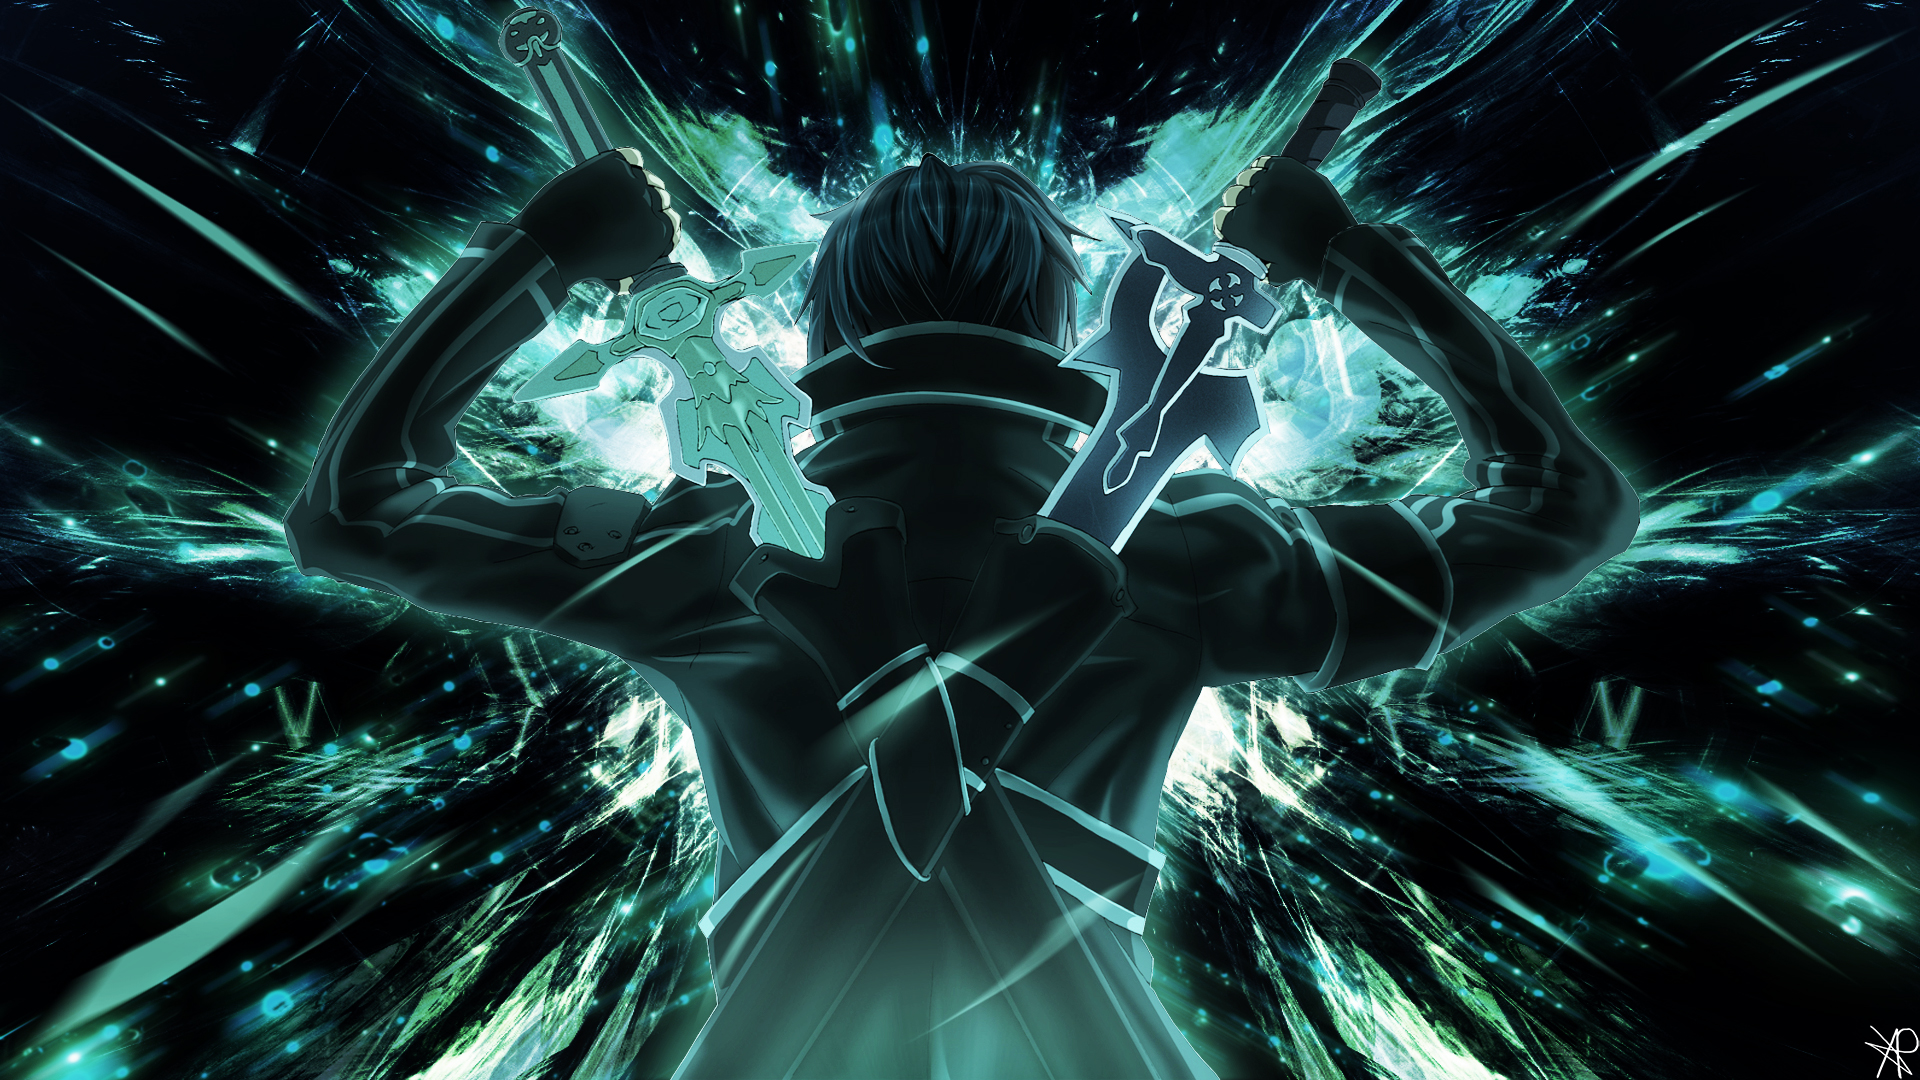 Sword Art Online Background: Wallpaper-SAO-03 By Andalexx On DeviantArt